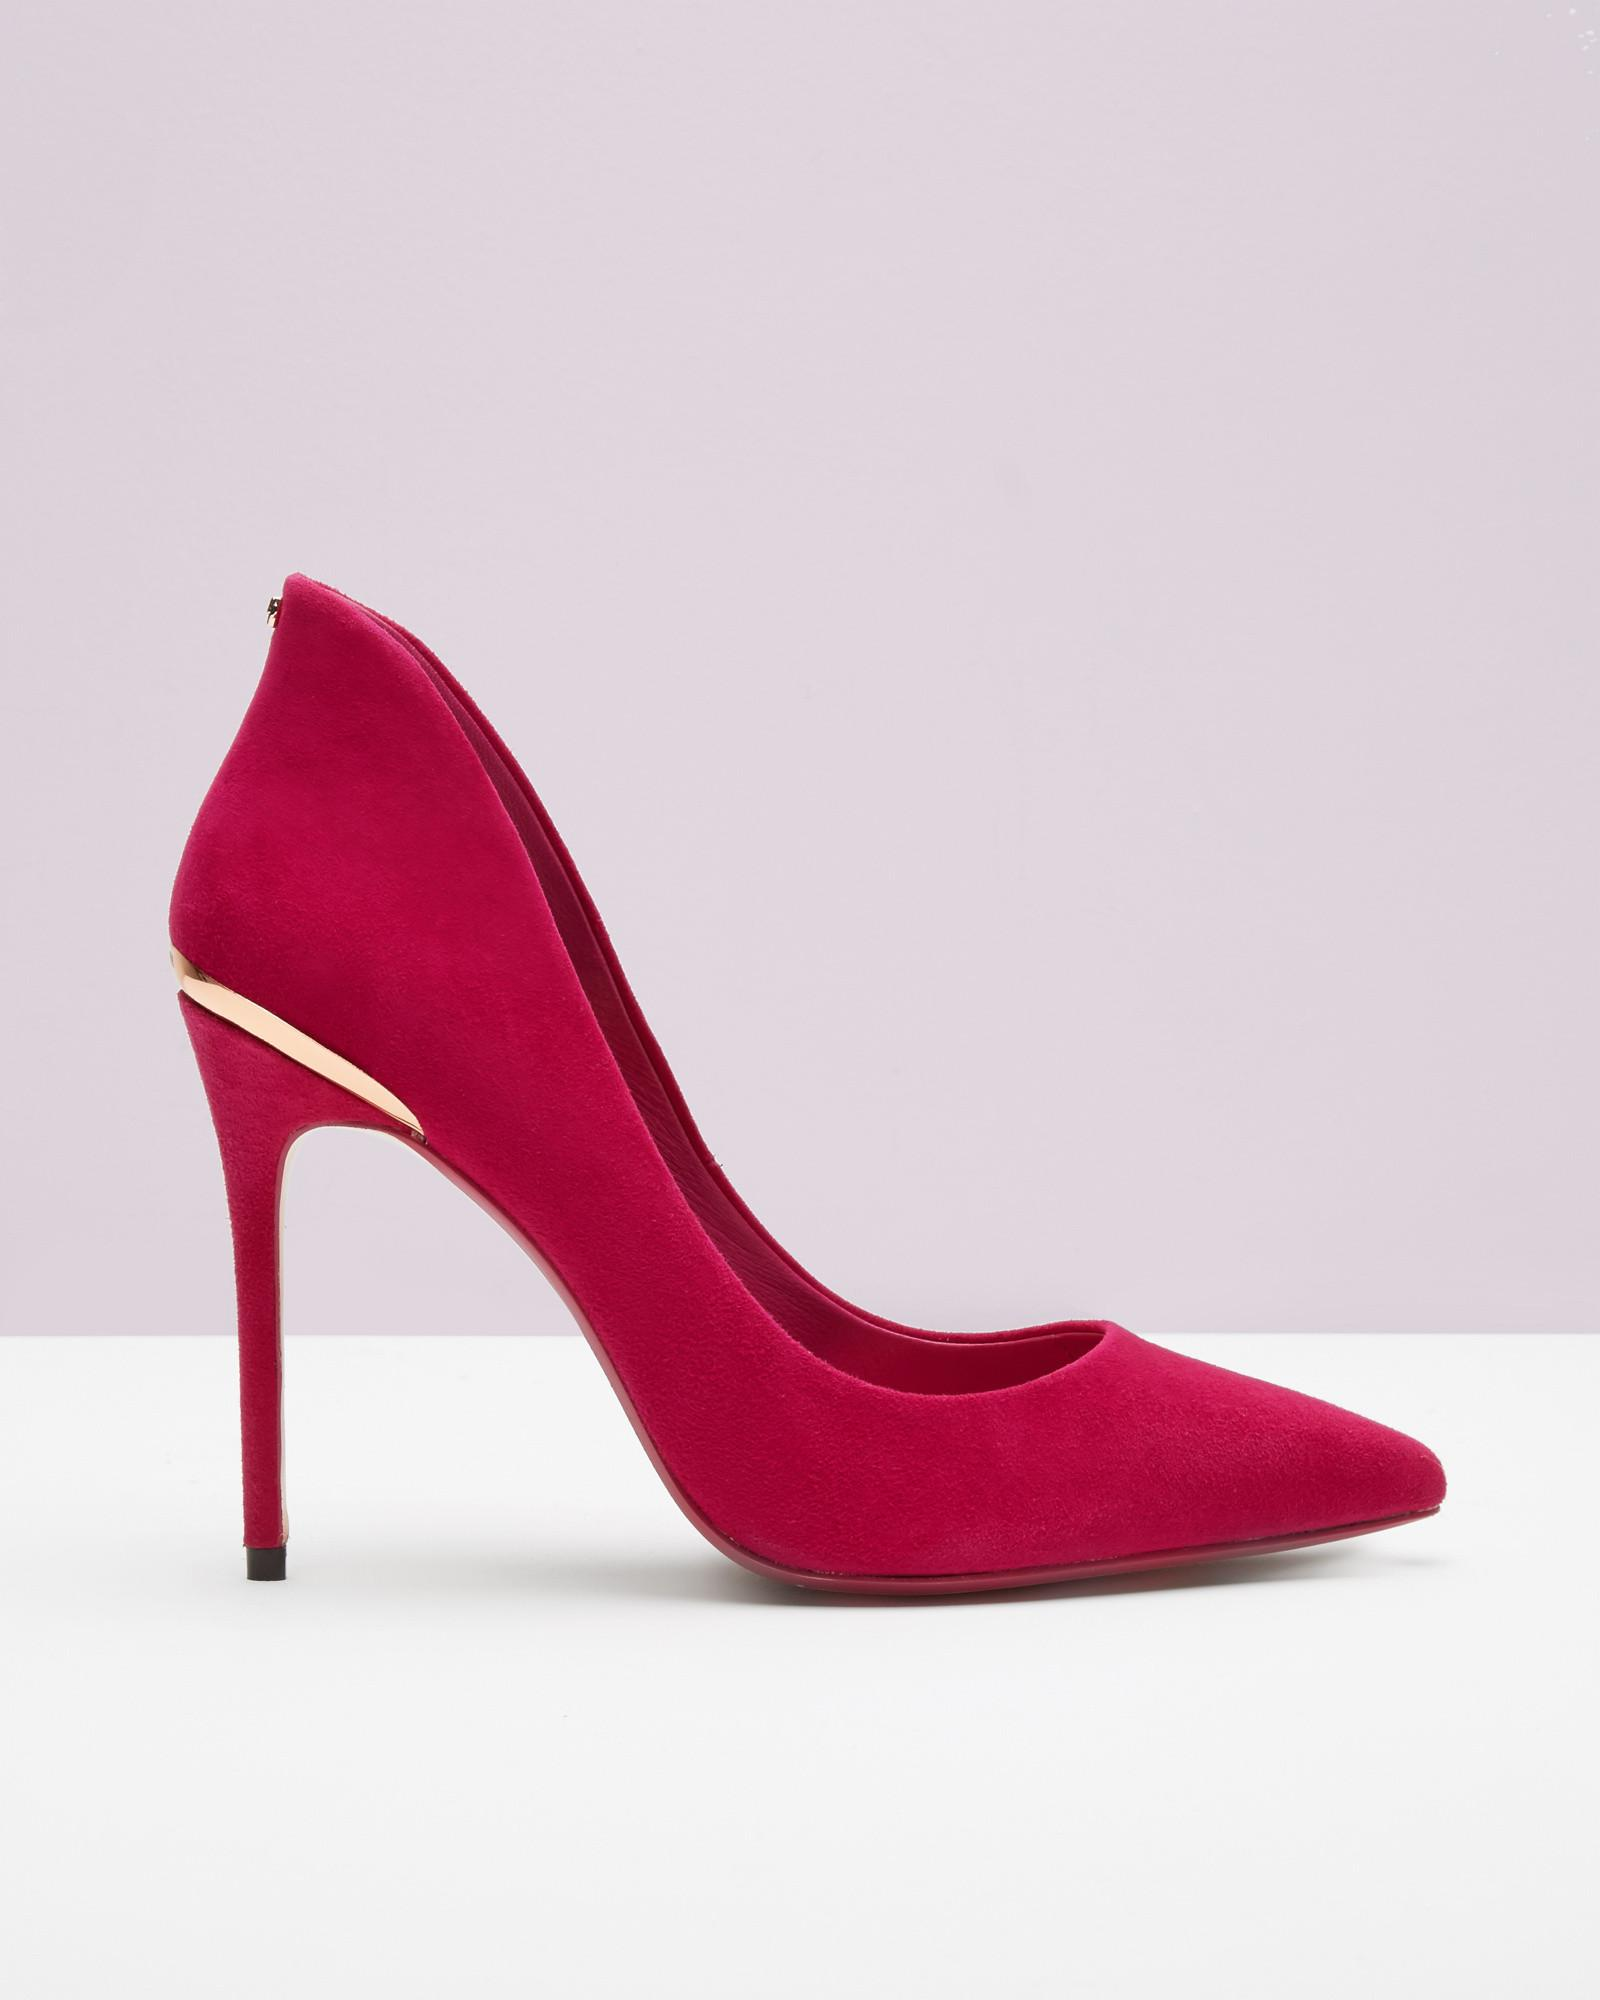 095191ec1 Ted Baker Pointed Leather Court Shoes in Pink - Lyst